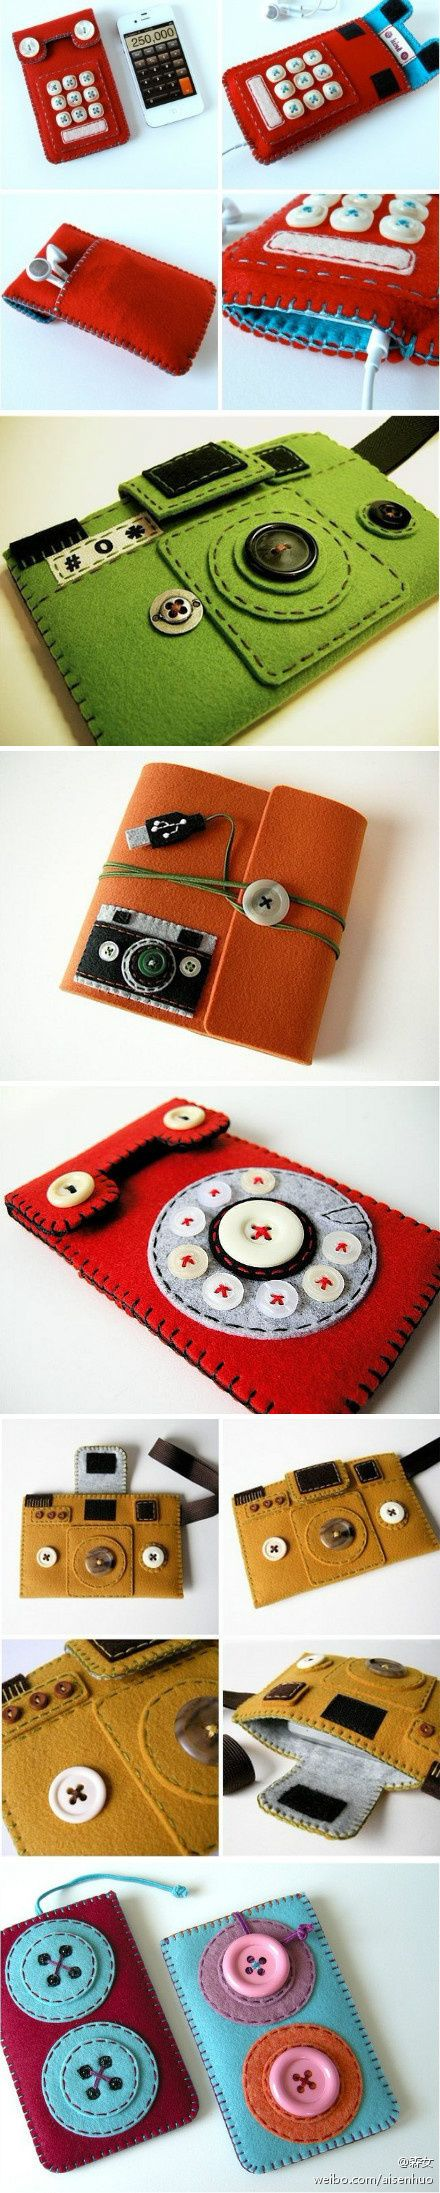 Fundas retro de fieltro - retro felt cases